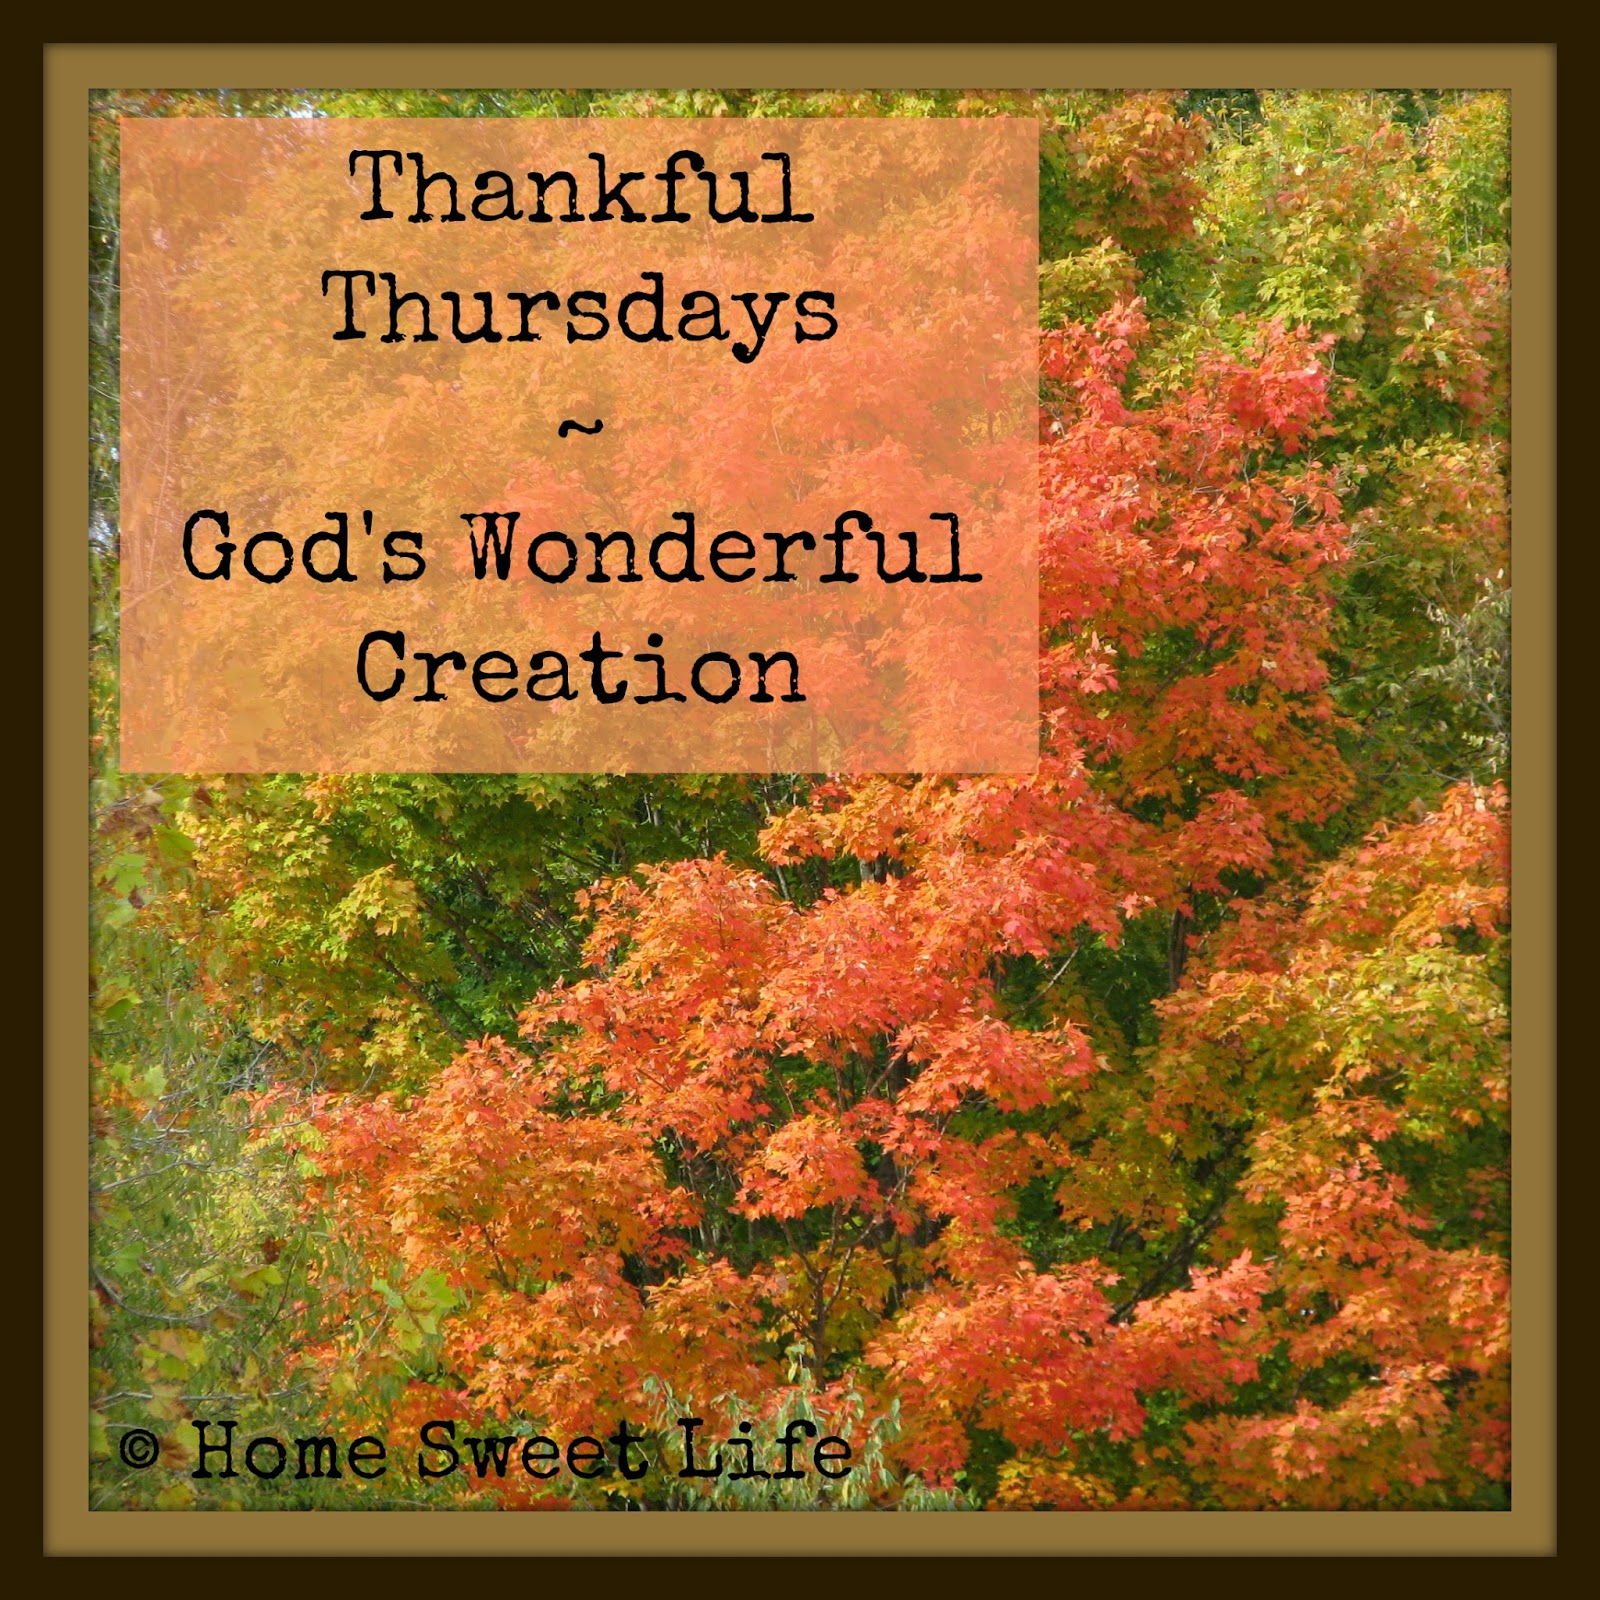 Thankfulness, creation, God's love